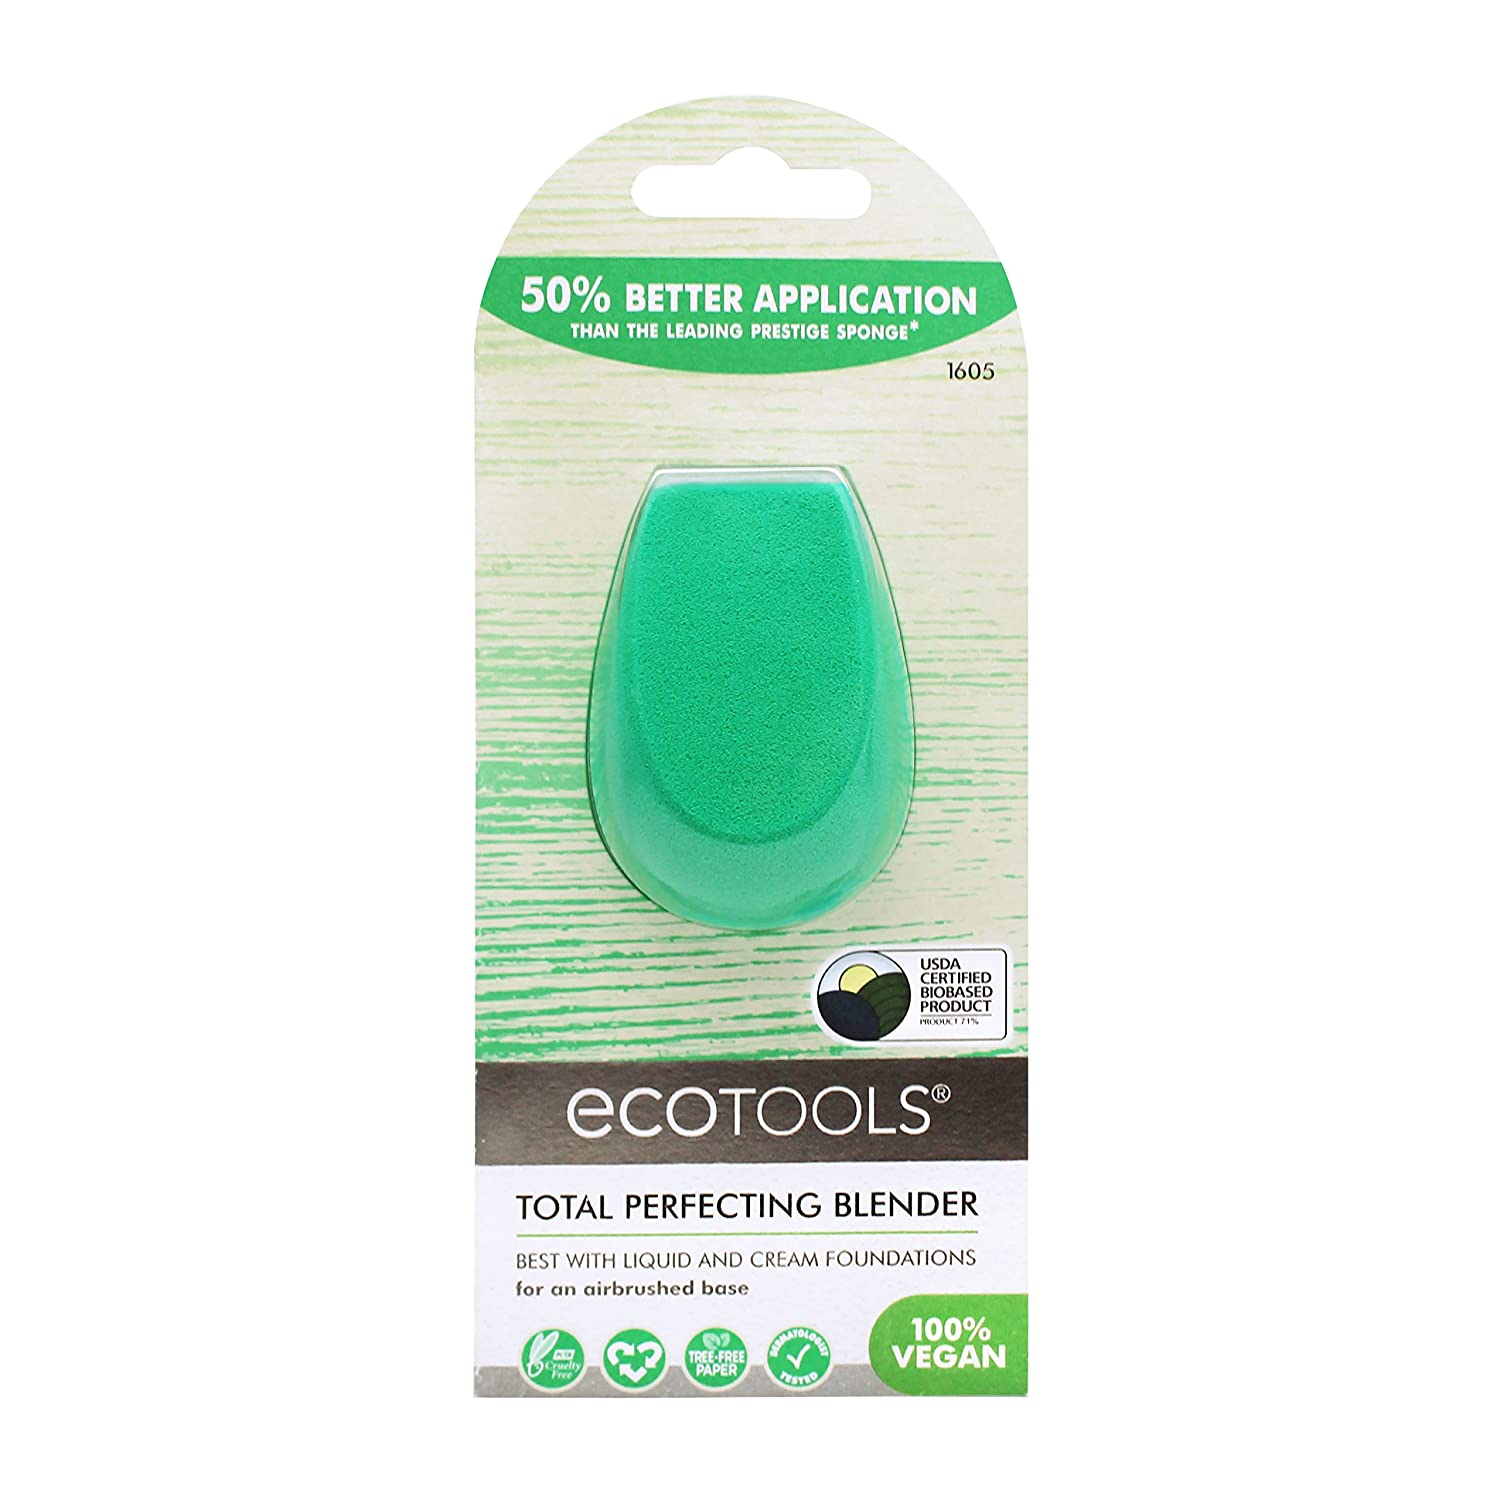 Ecotools Cruelty Free and Eco Friendly Total Perfecting Blender Sponge, Made with Recycled and Sustainable Materials Paris Presents Incorporated 1605